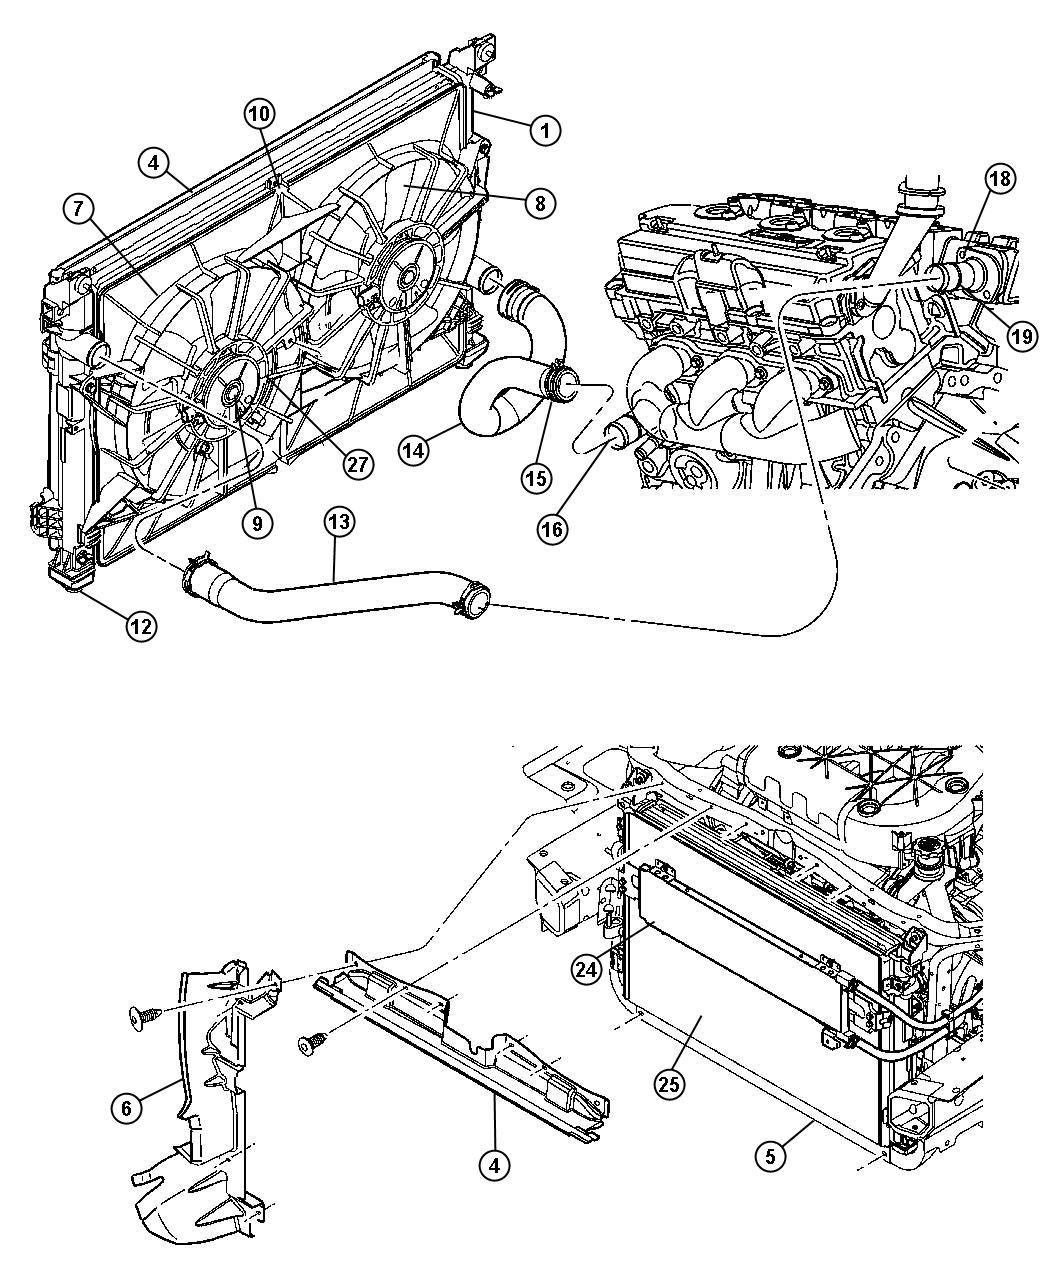 Chrysler 3 8 Engine Diagram